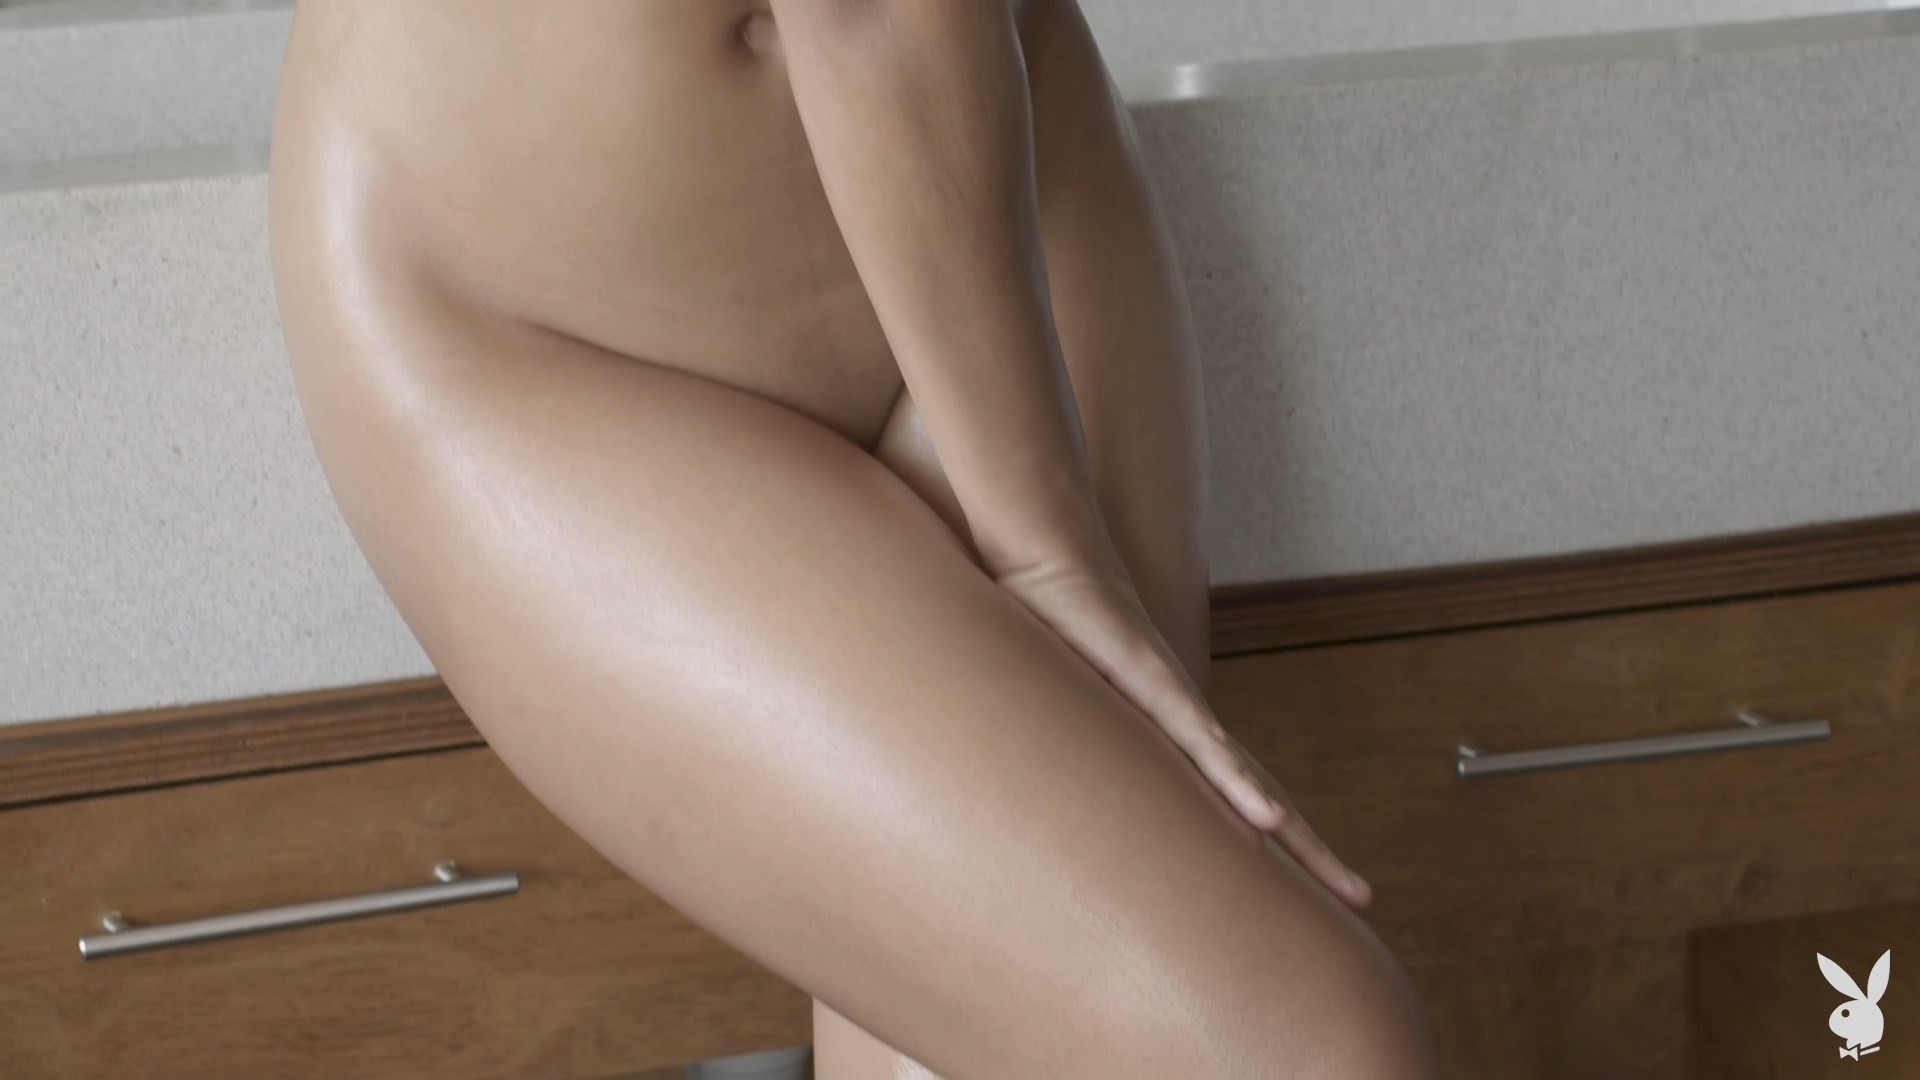 Cara Pin Nude Soft Shower scr thefappening.nu 2